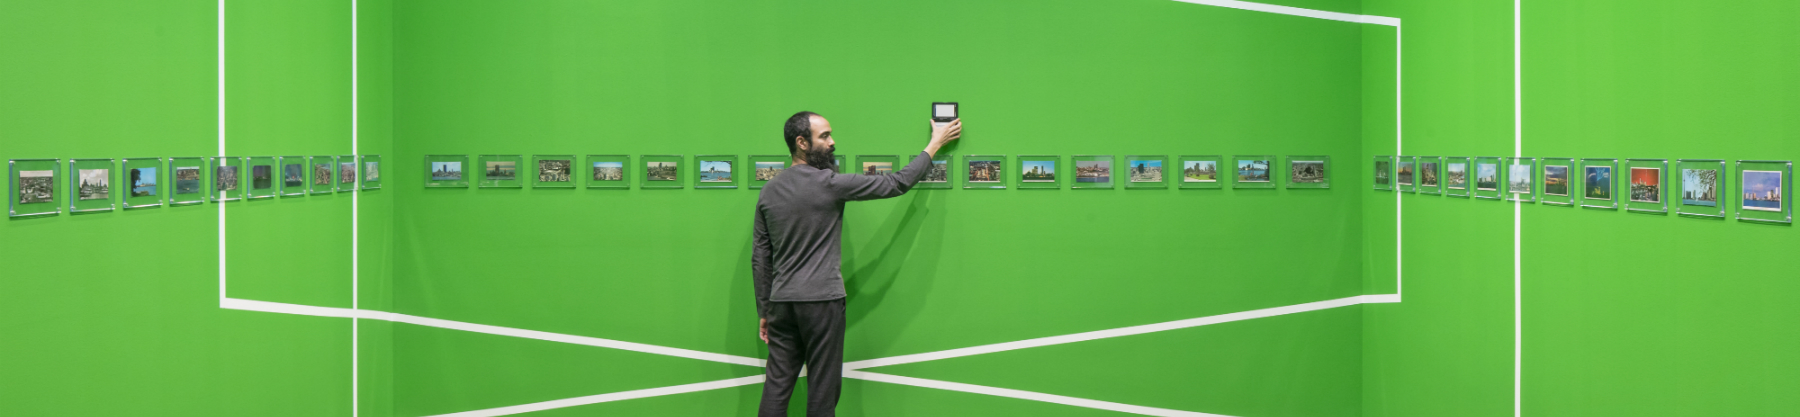 A man stands in the middle of a gallery of photographs. The walls are bright green and the photos are hung in a horizontal line around the room.